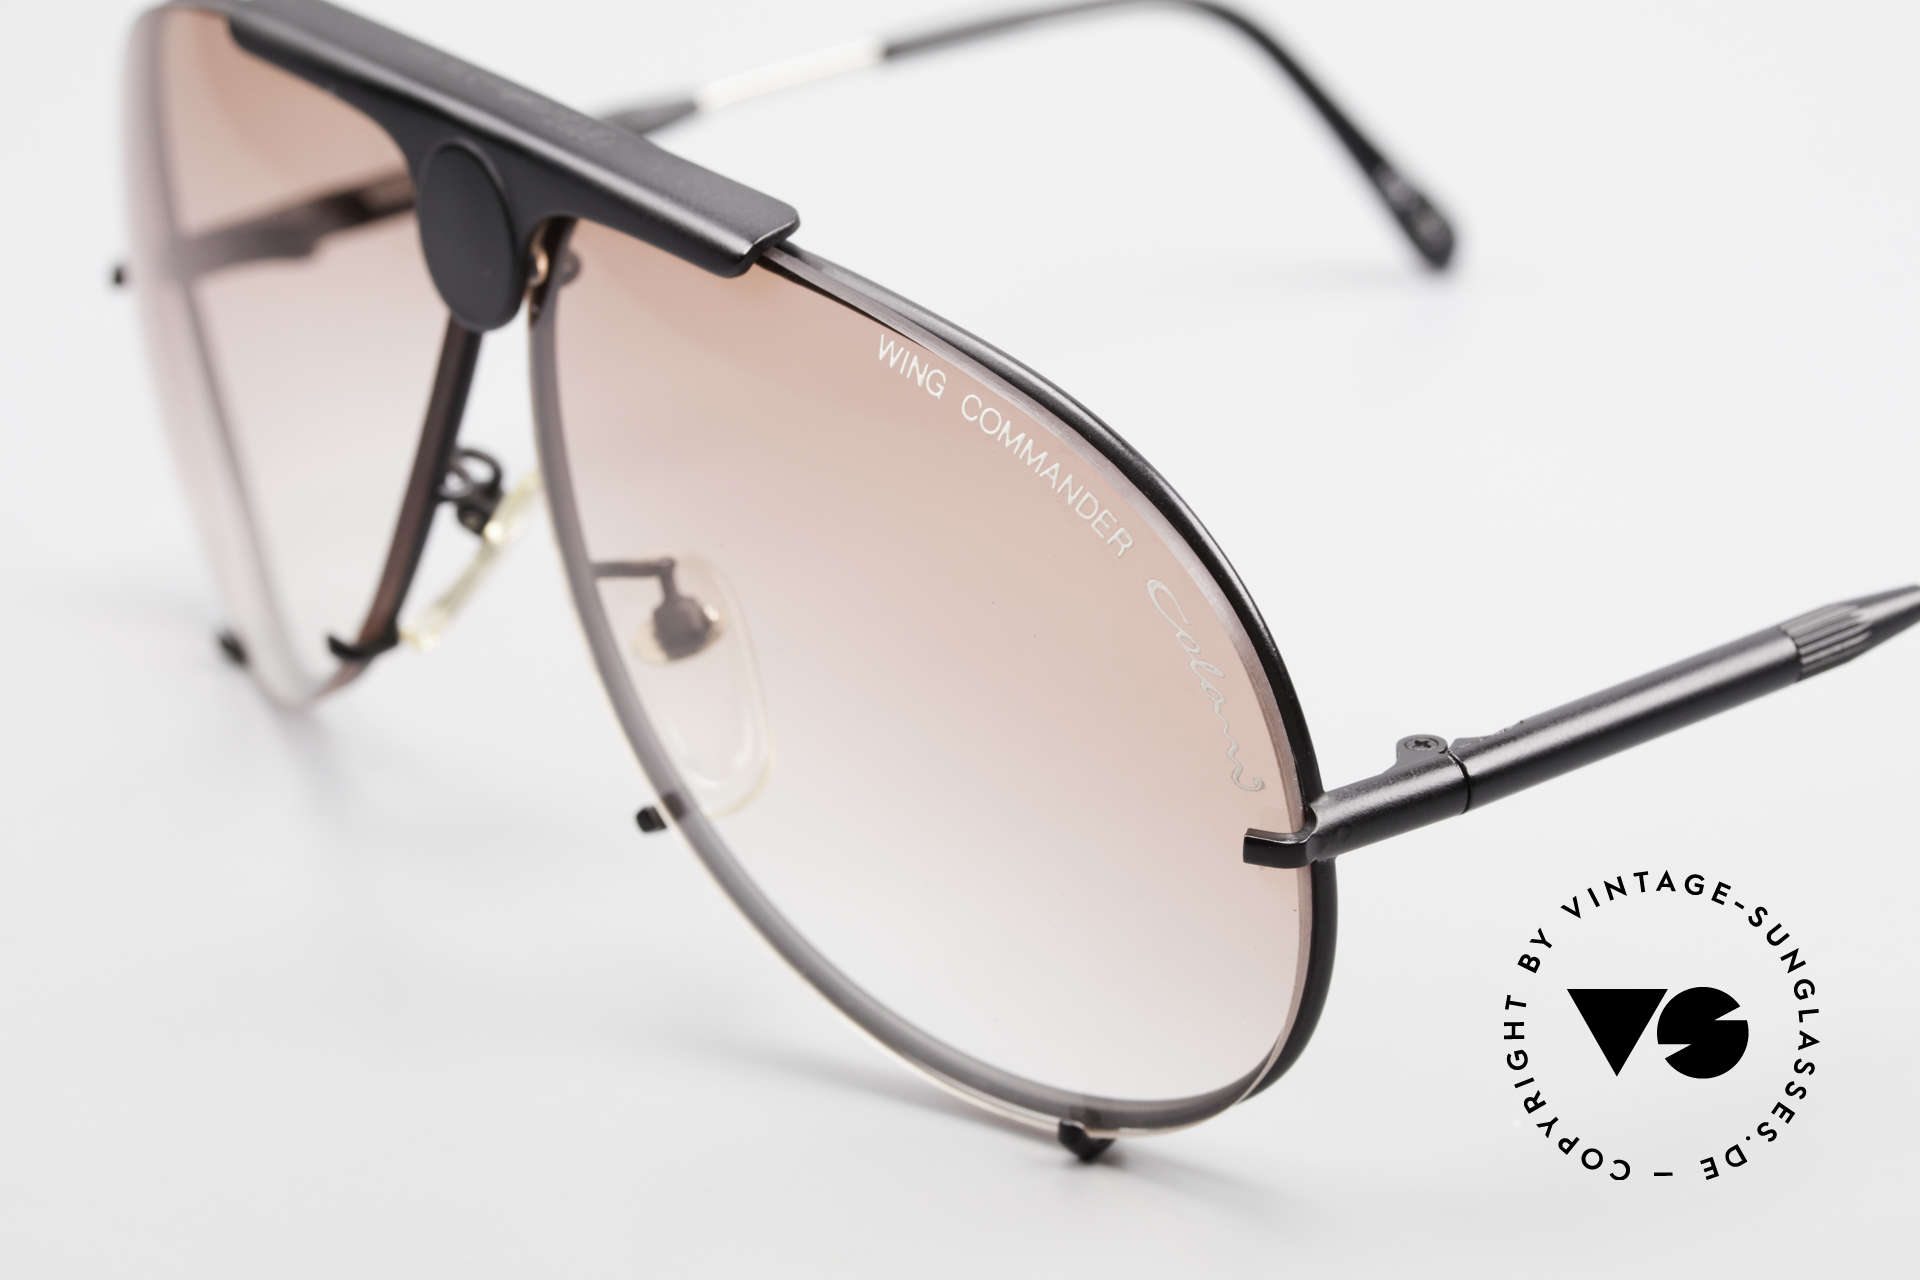 Colani 10-401 Wing Commander Optos Design, unworn (like all our vintage eyewear by COLANI), Made for Men